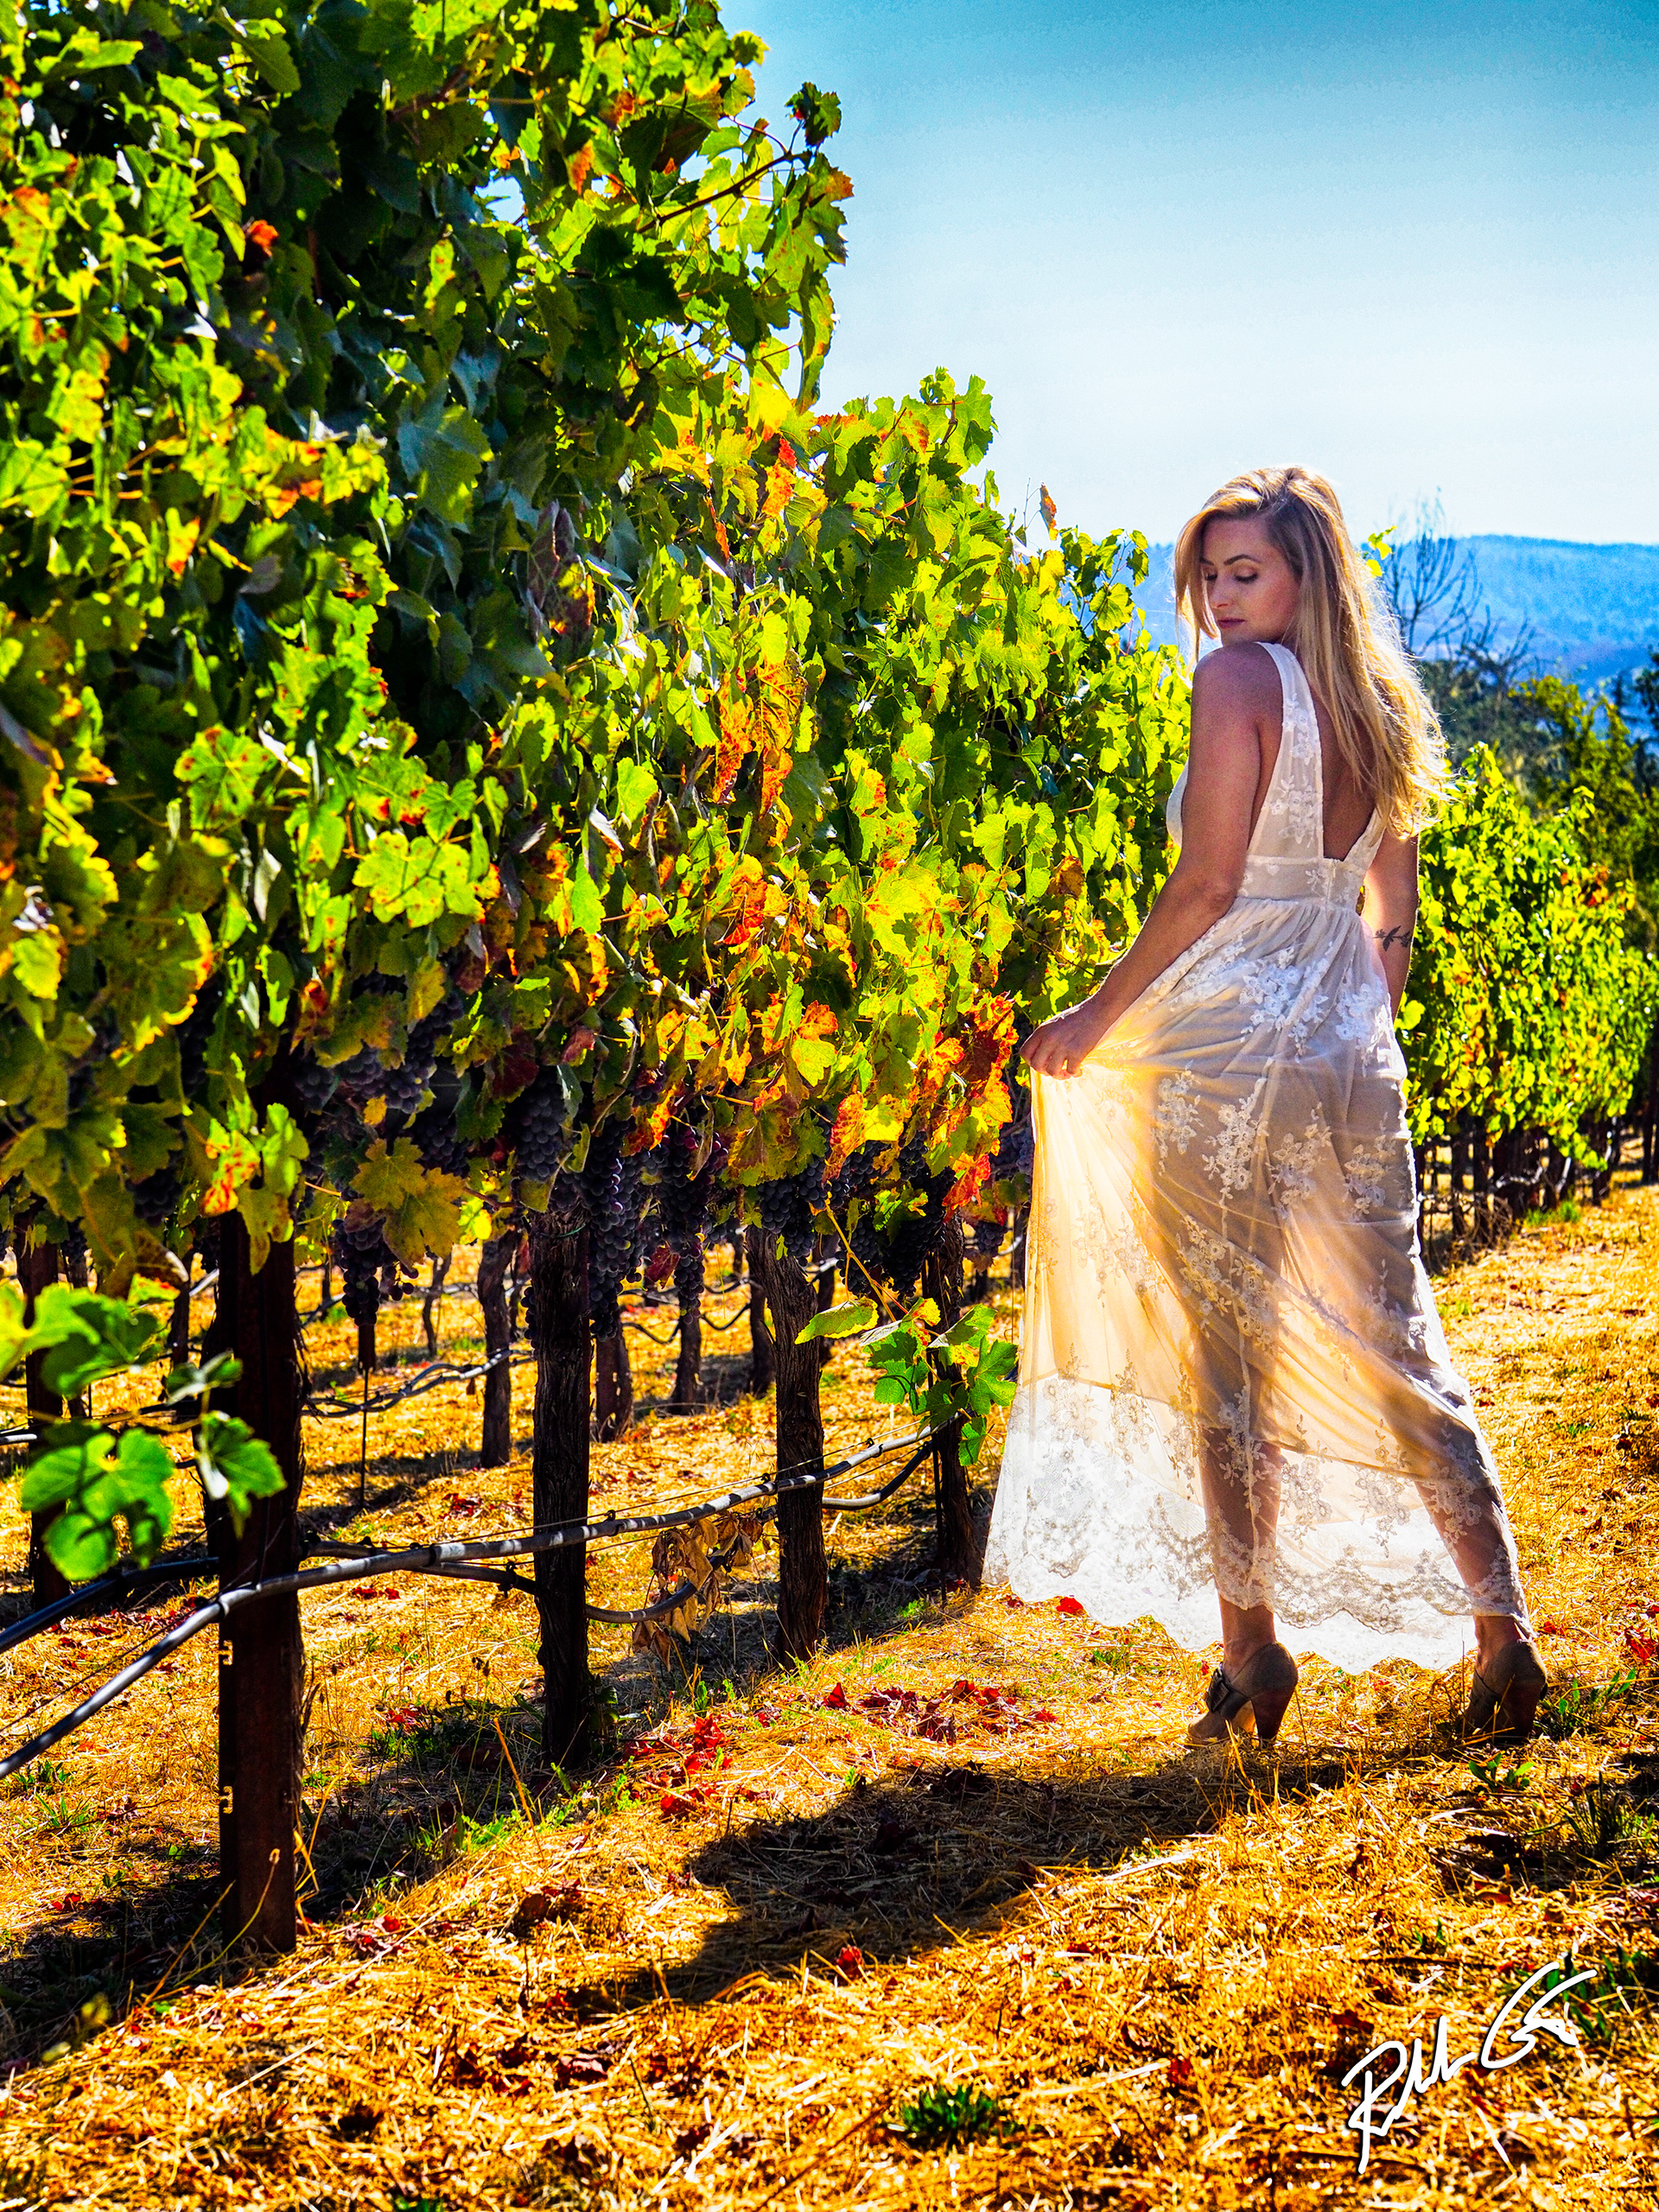 Sonoma Napa Models Wine Photography Adventure Workshop